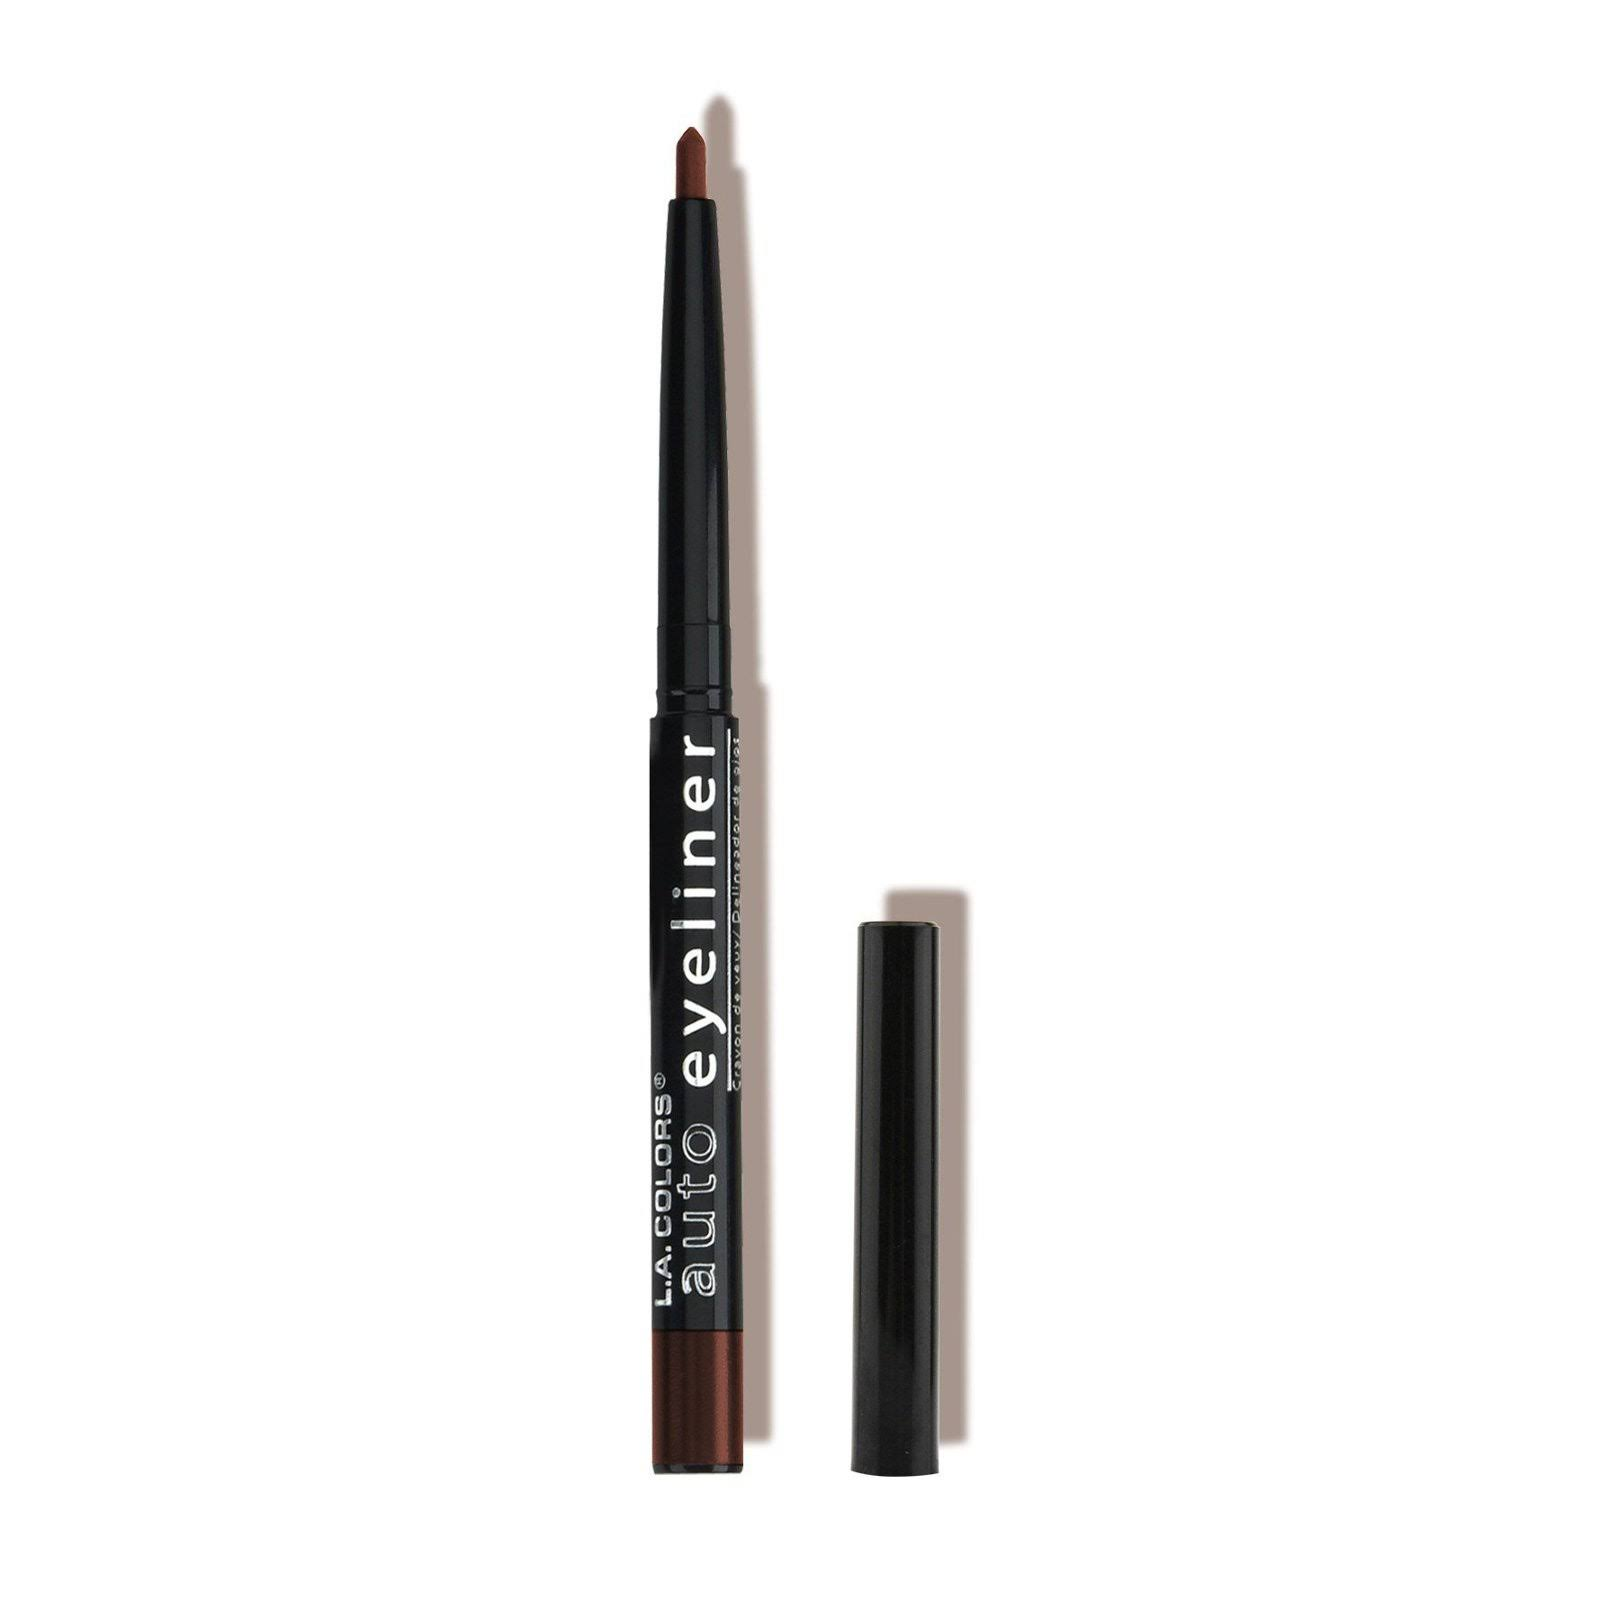 La Colors Automatic Eyeliner Pencil - Black Brown, 0.01oz